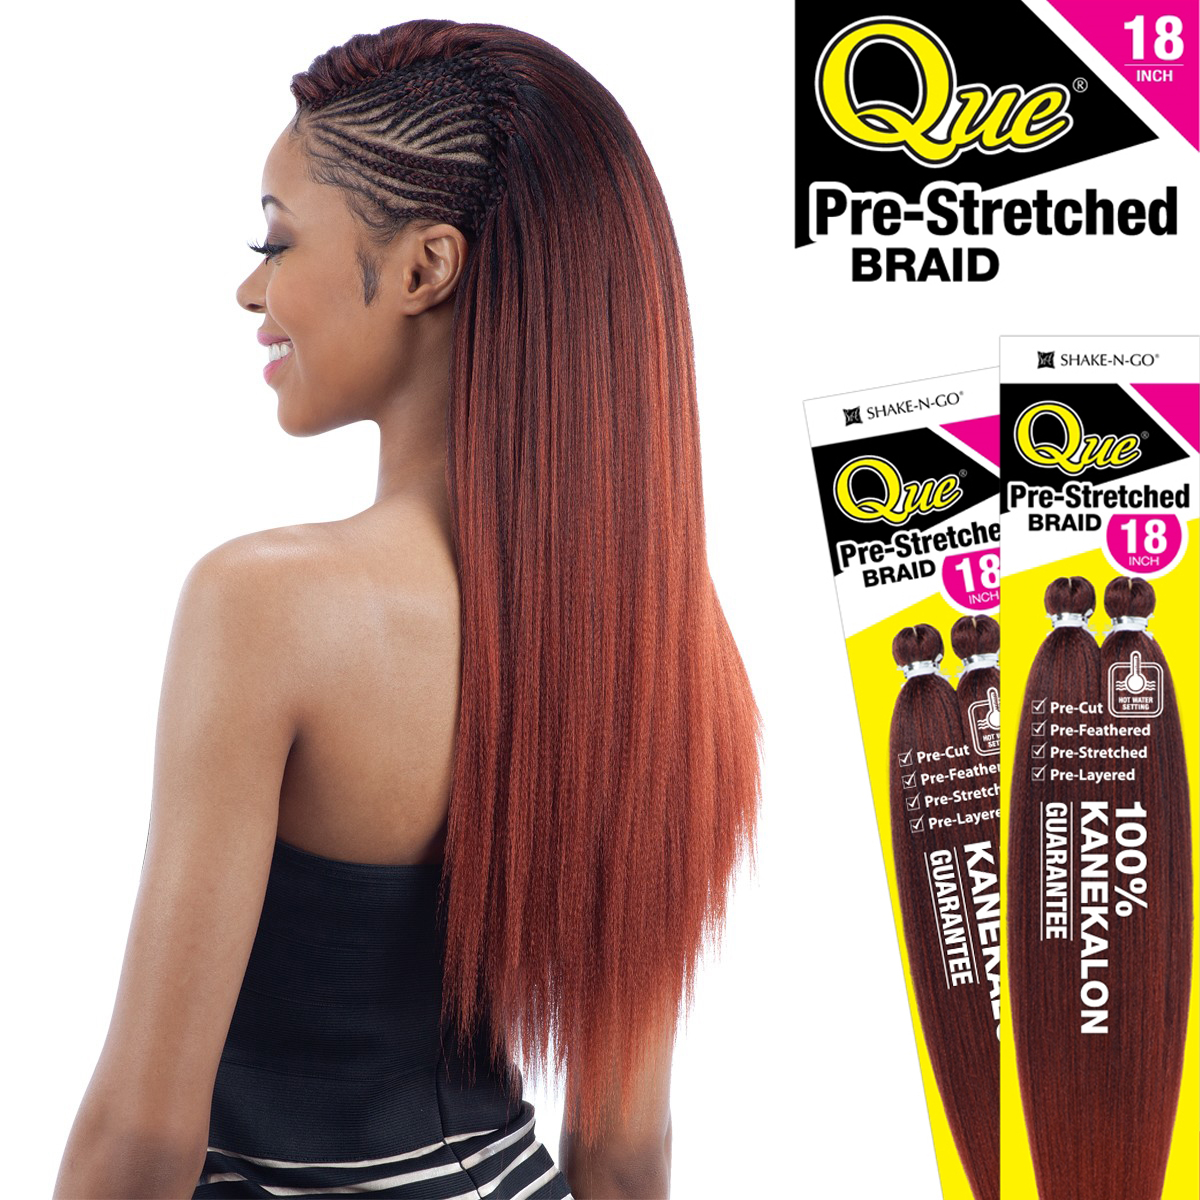 PRE STRETCHED BRAID 18 QUE SYNTHETIC 100 KANEKALON